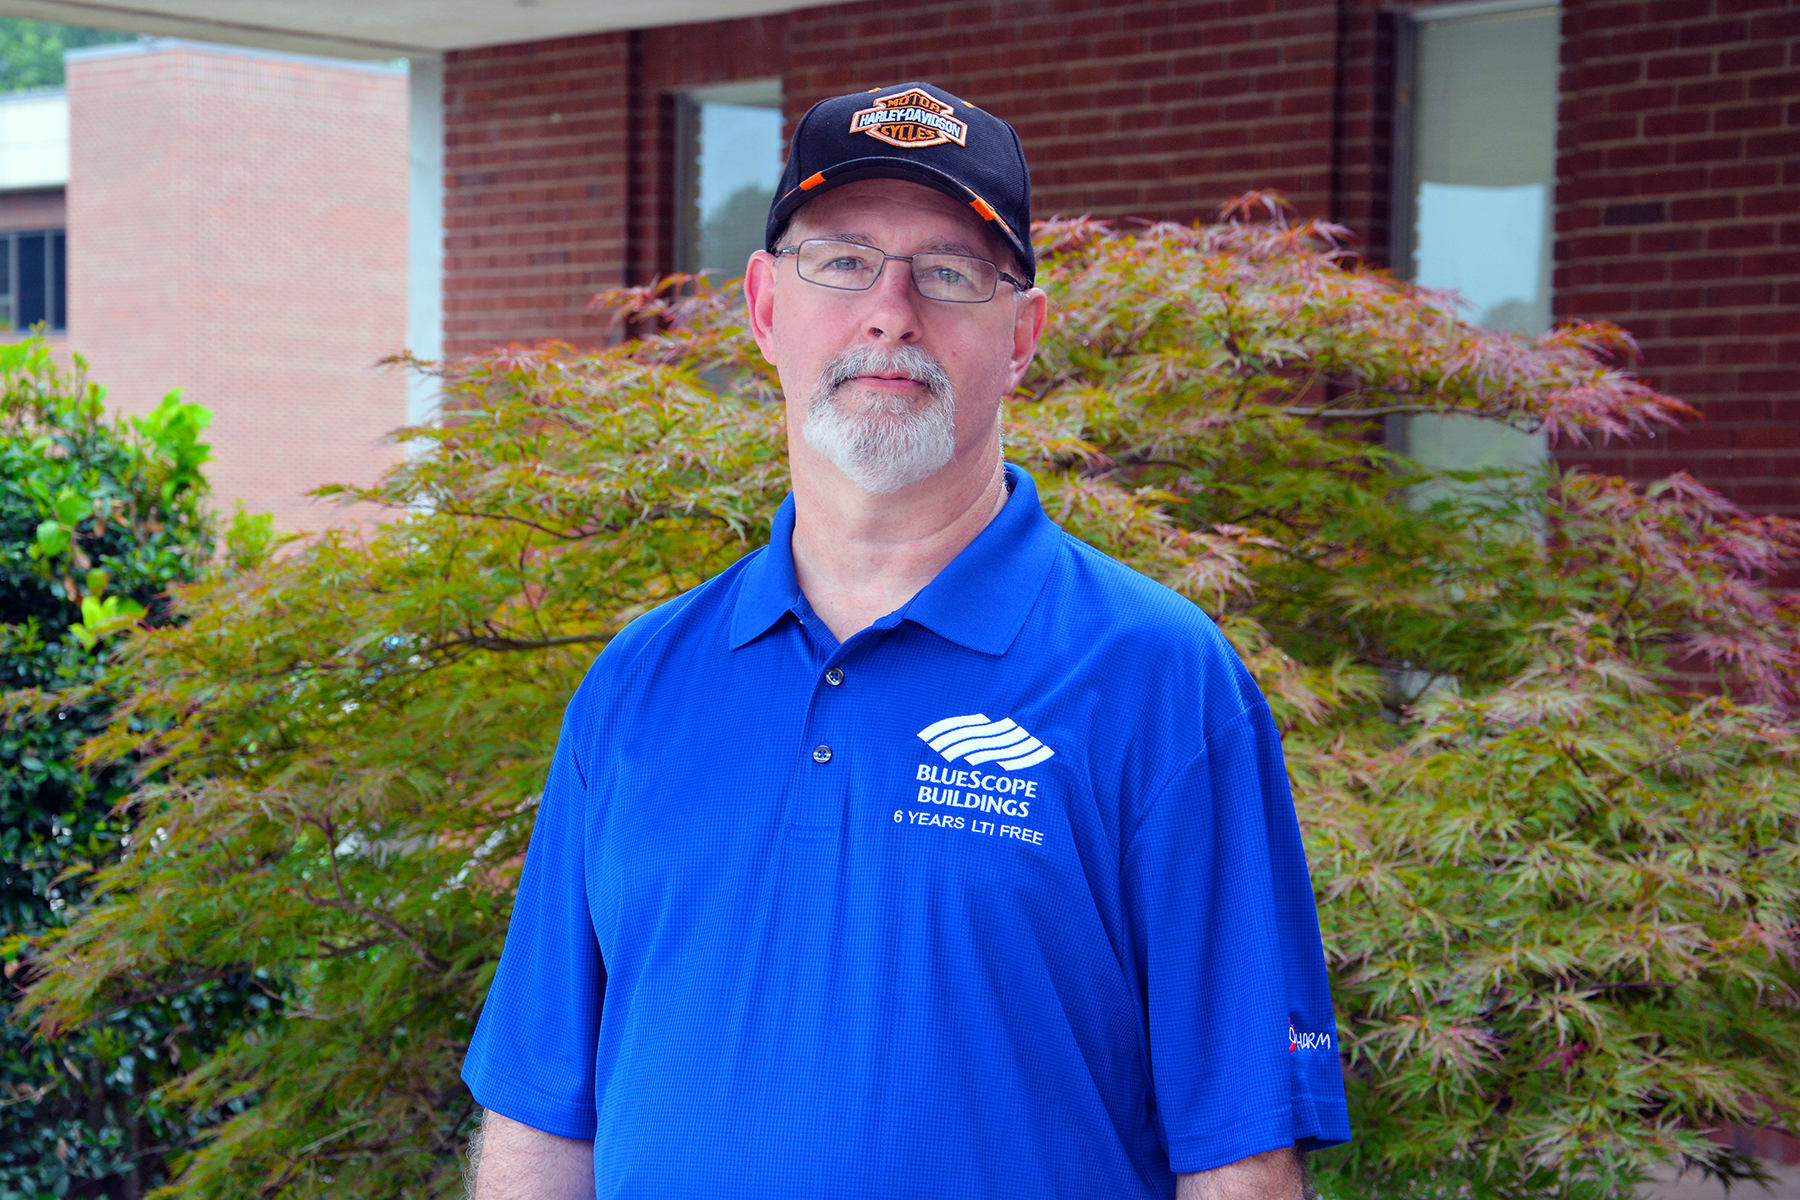 Jimmy Jones of Maxton is a maintenance technician with Blue Scoop Buildings North America. The four diplomas he earned from Richmond Community College have helped him advance in his job.